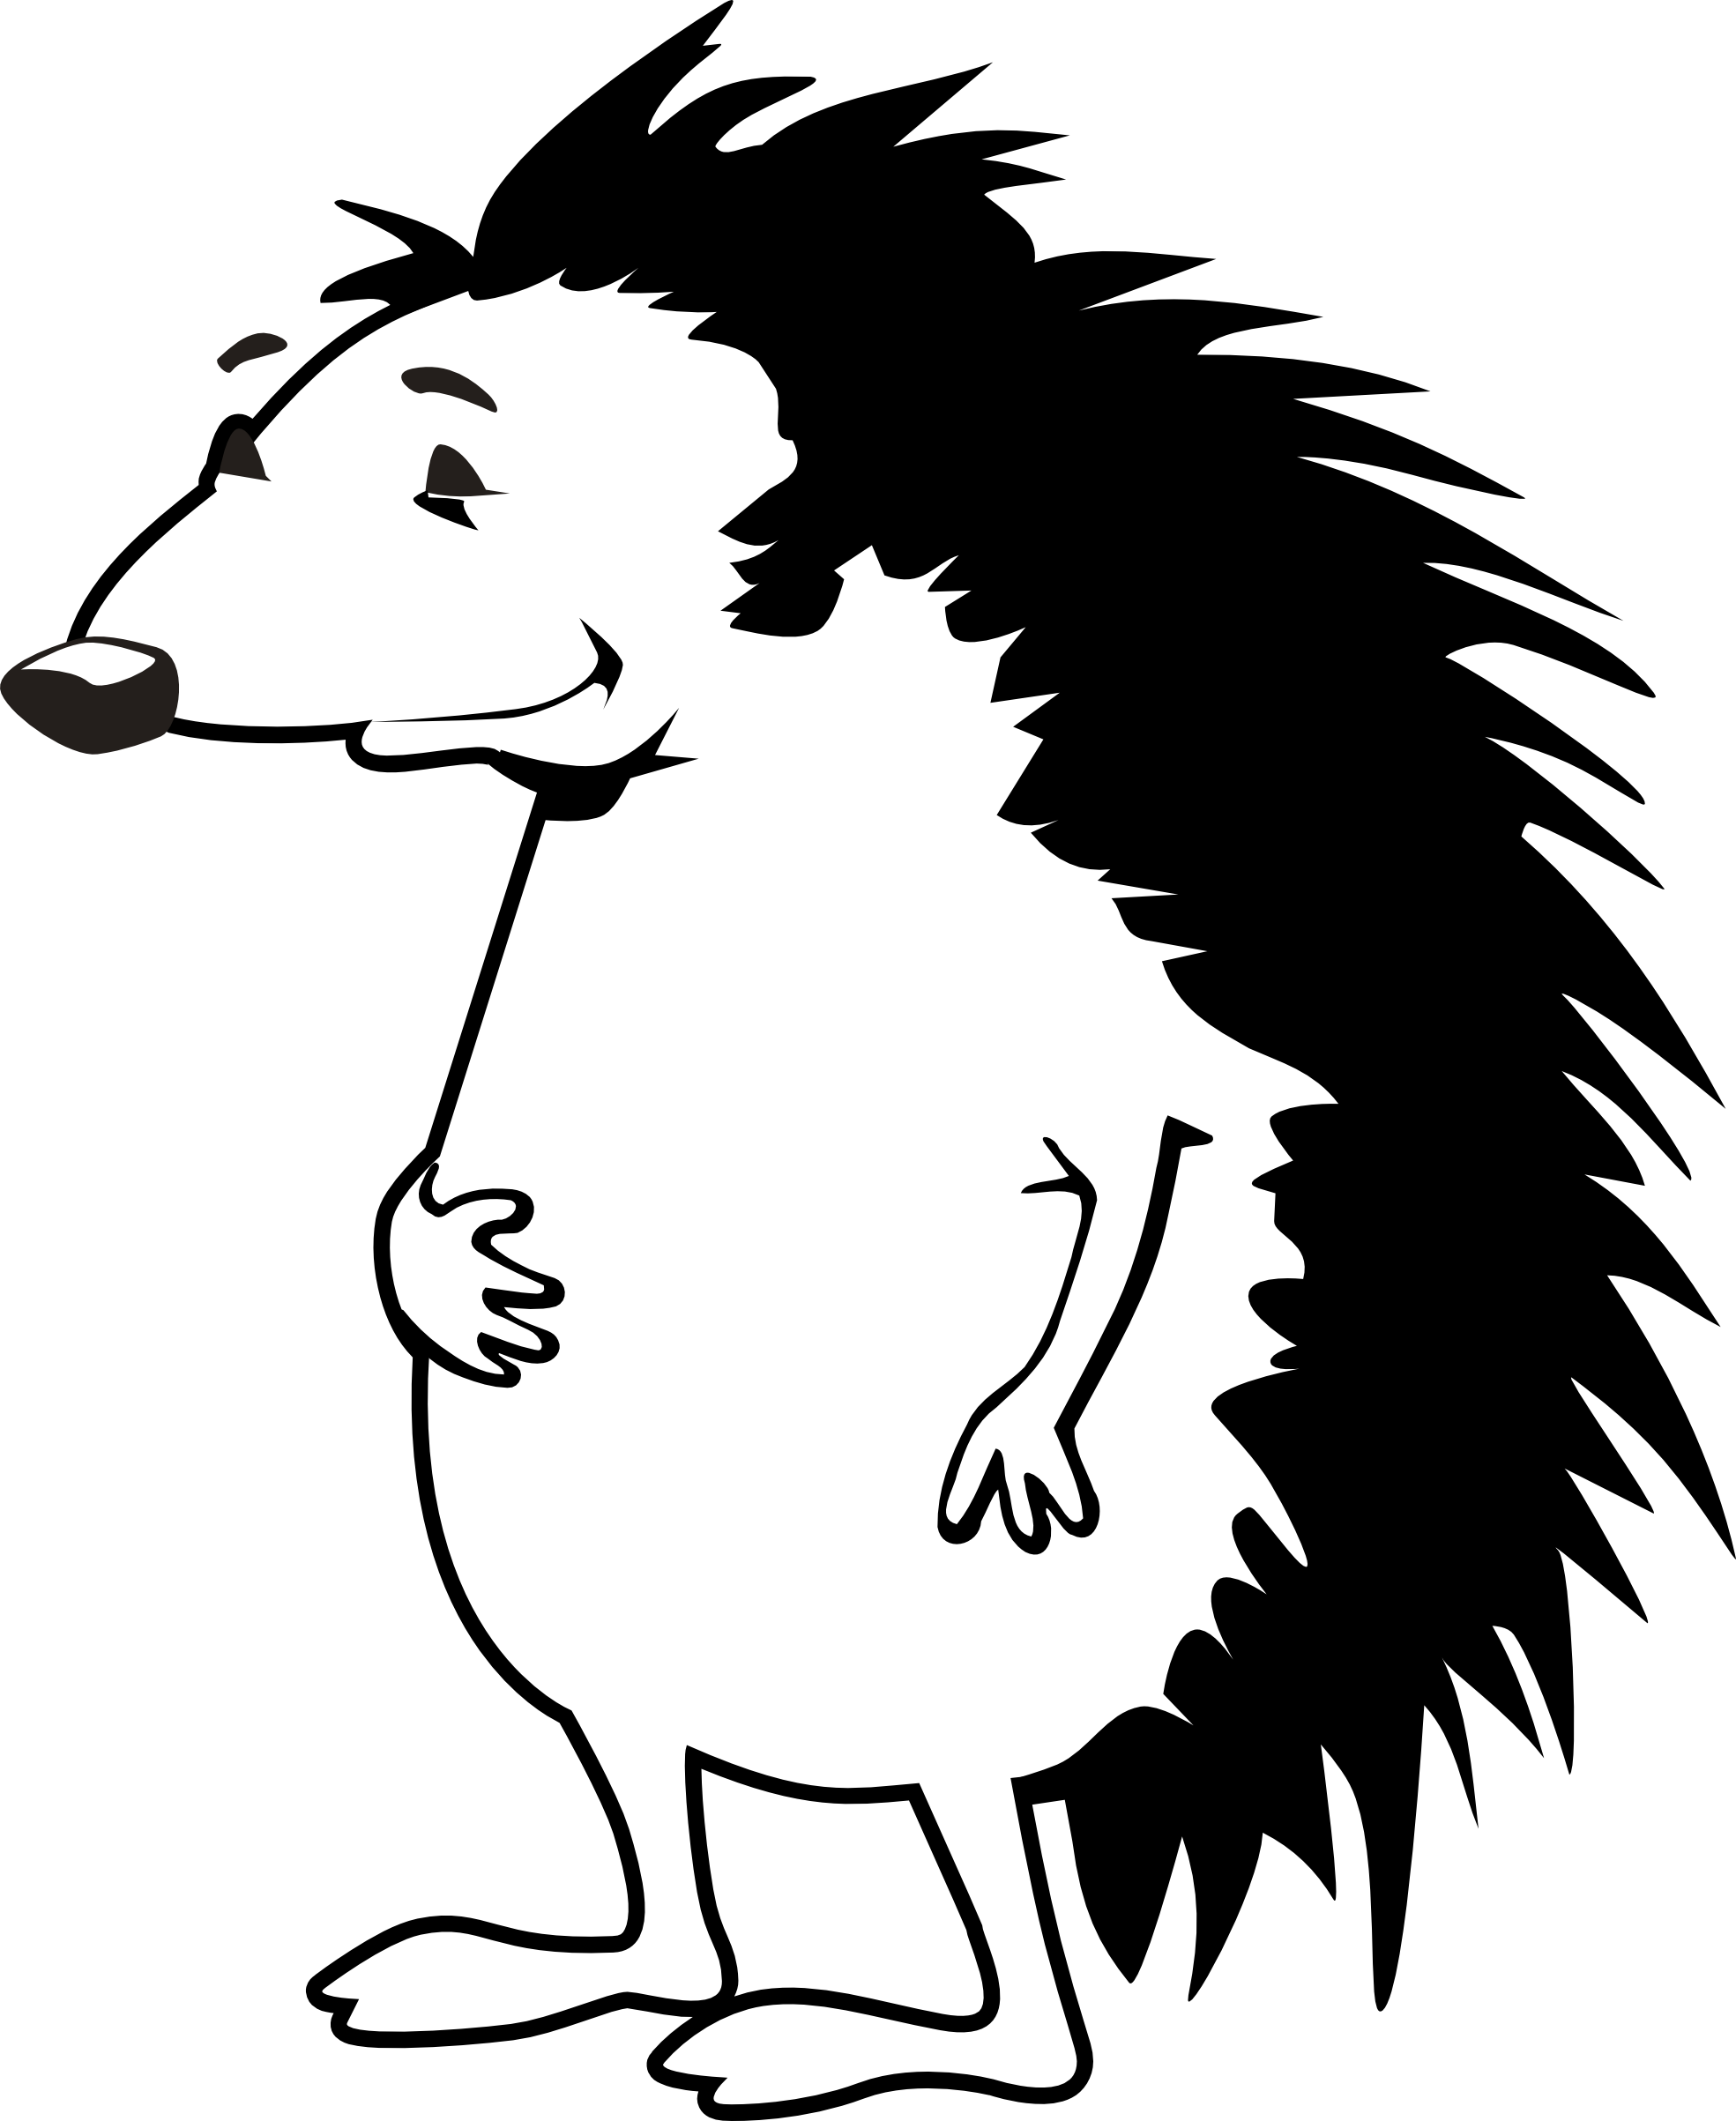 Hedgehog clipart two animal. Panda free images